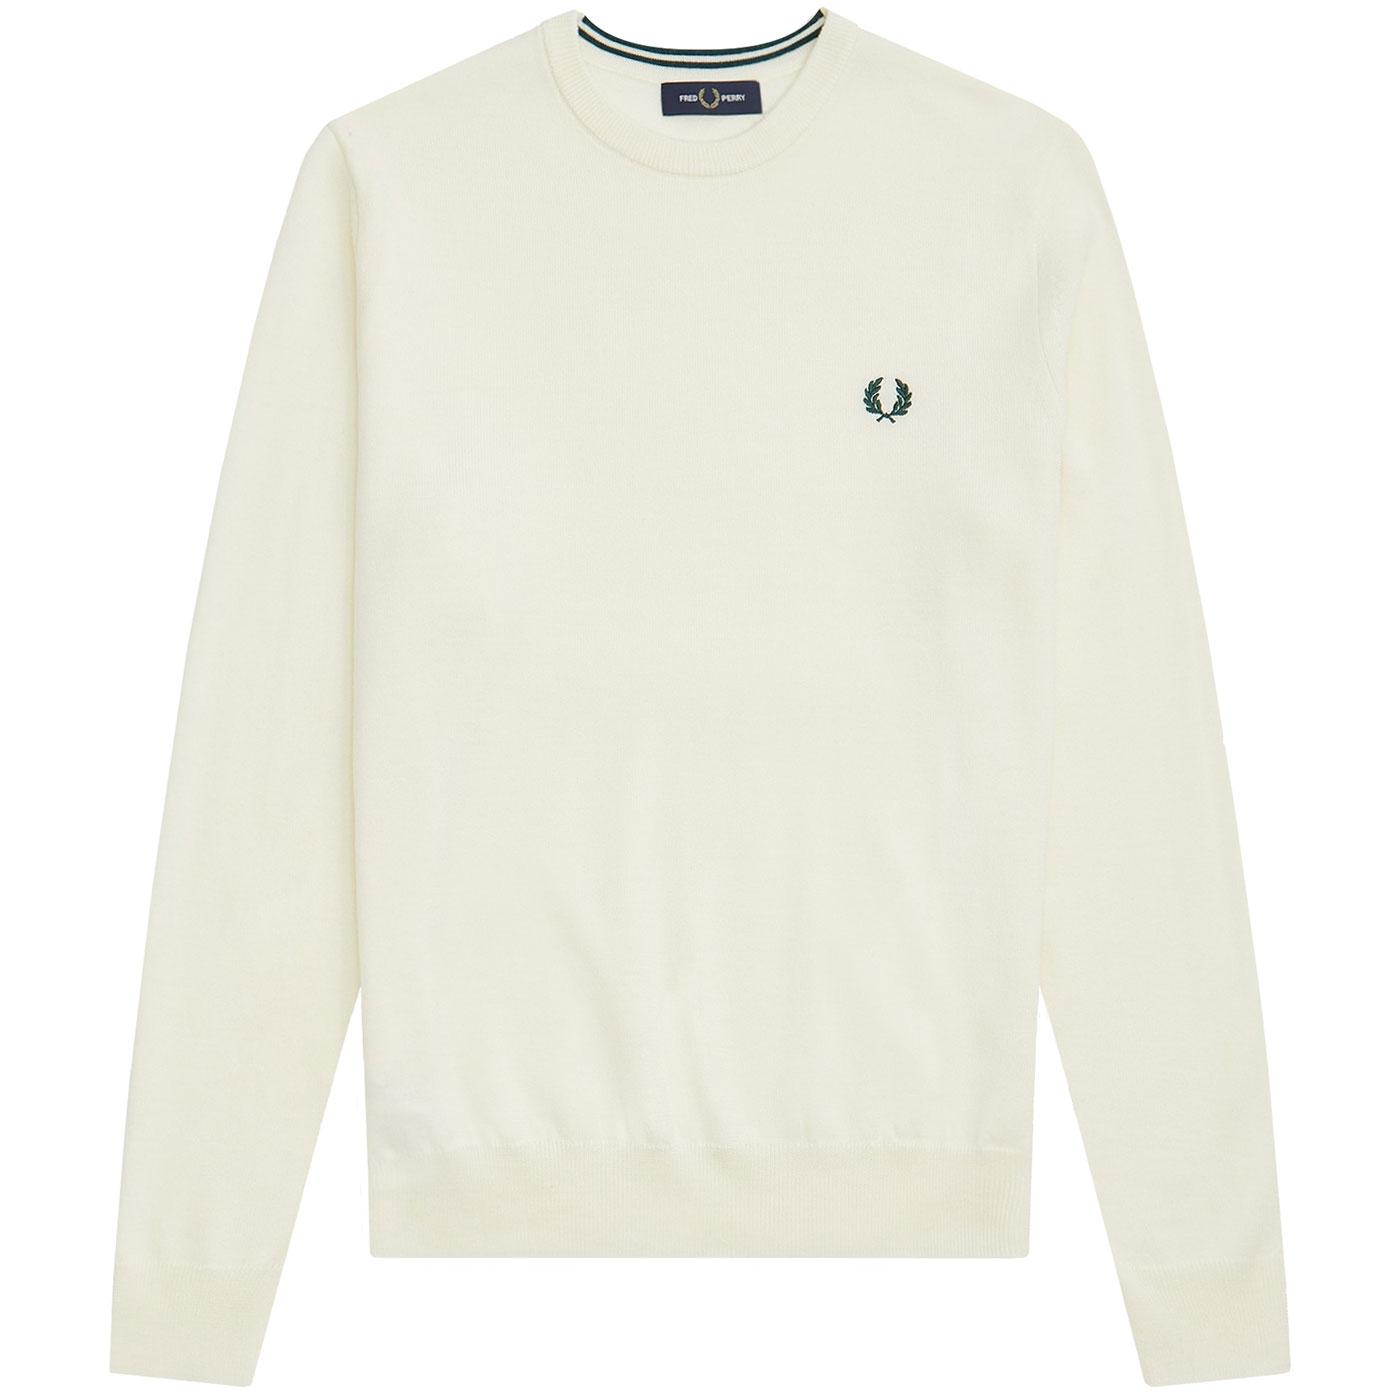 FRED PERRY Men's Mod Knitted Merino Wool Jumper LE